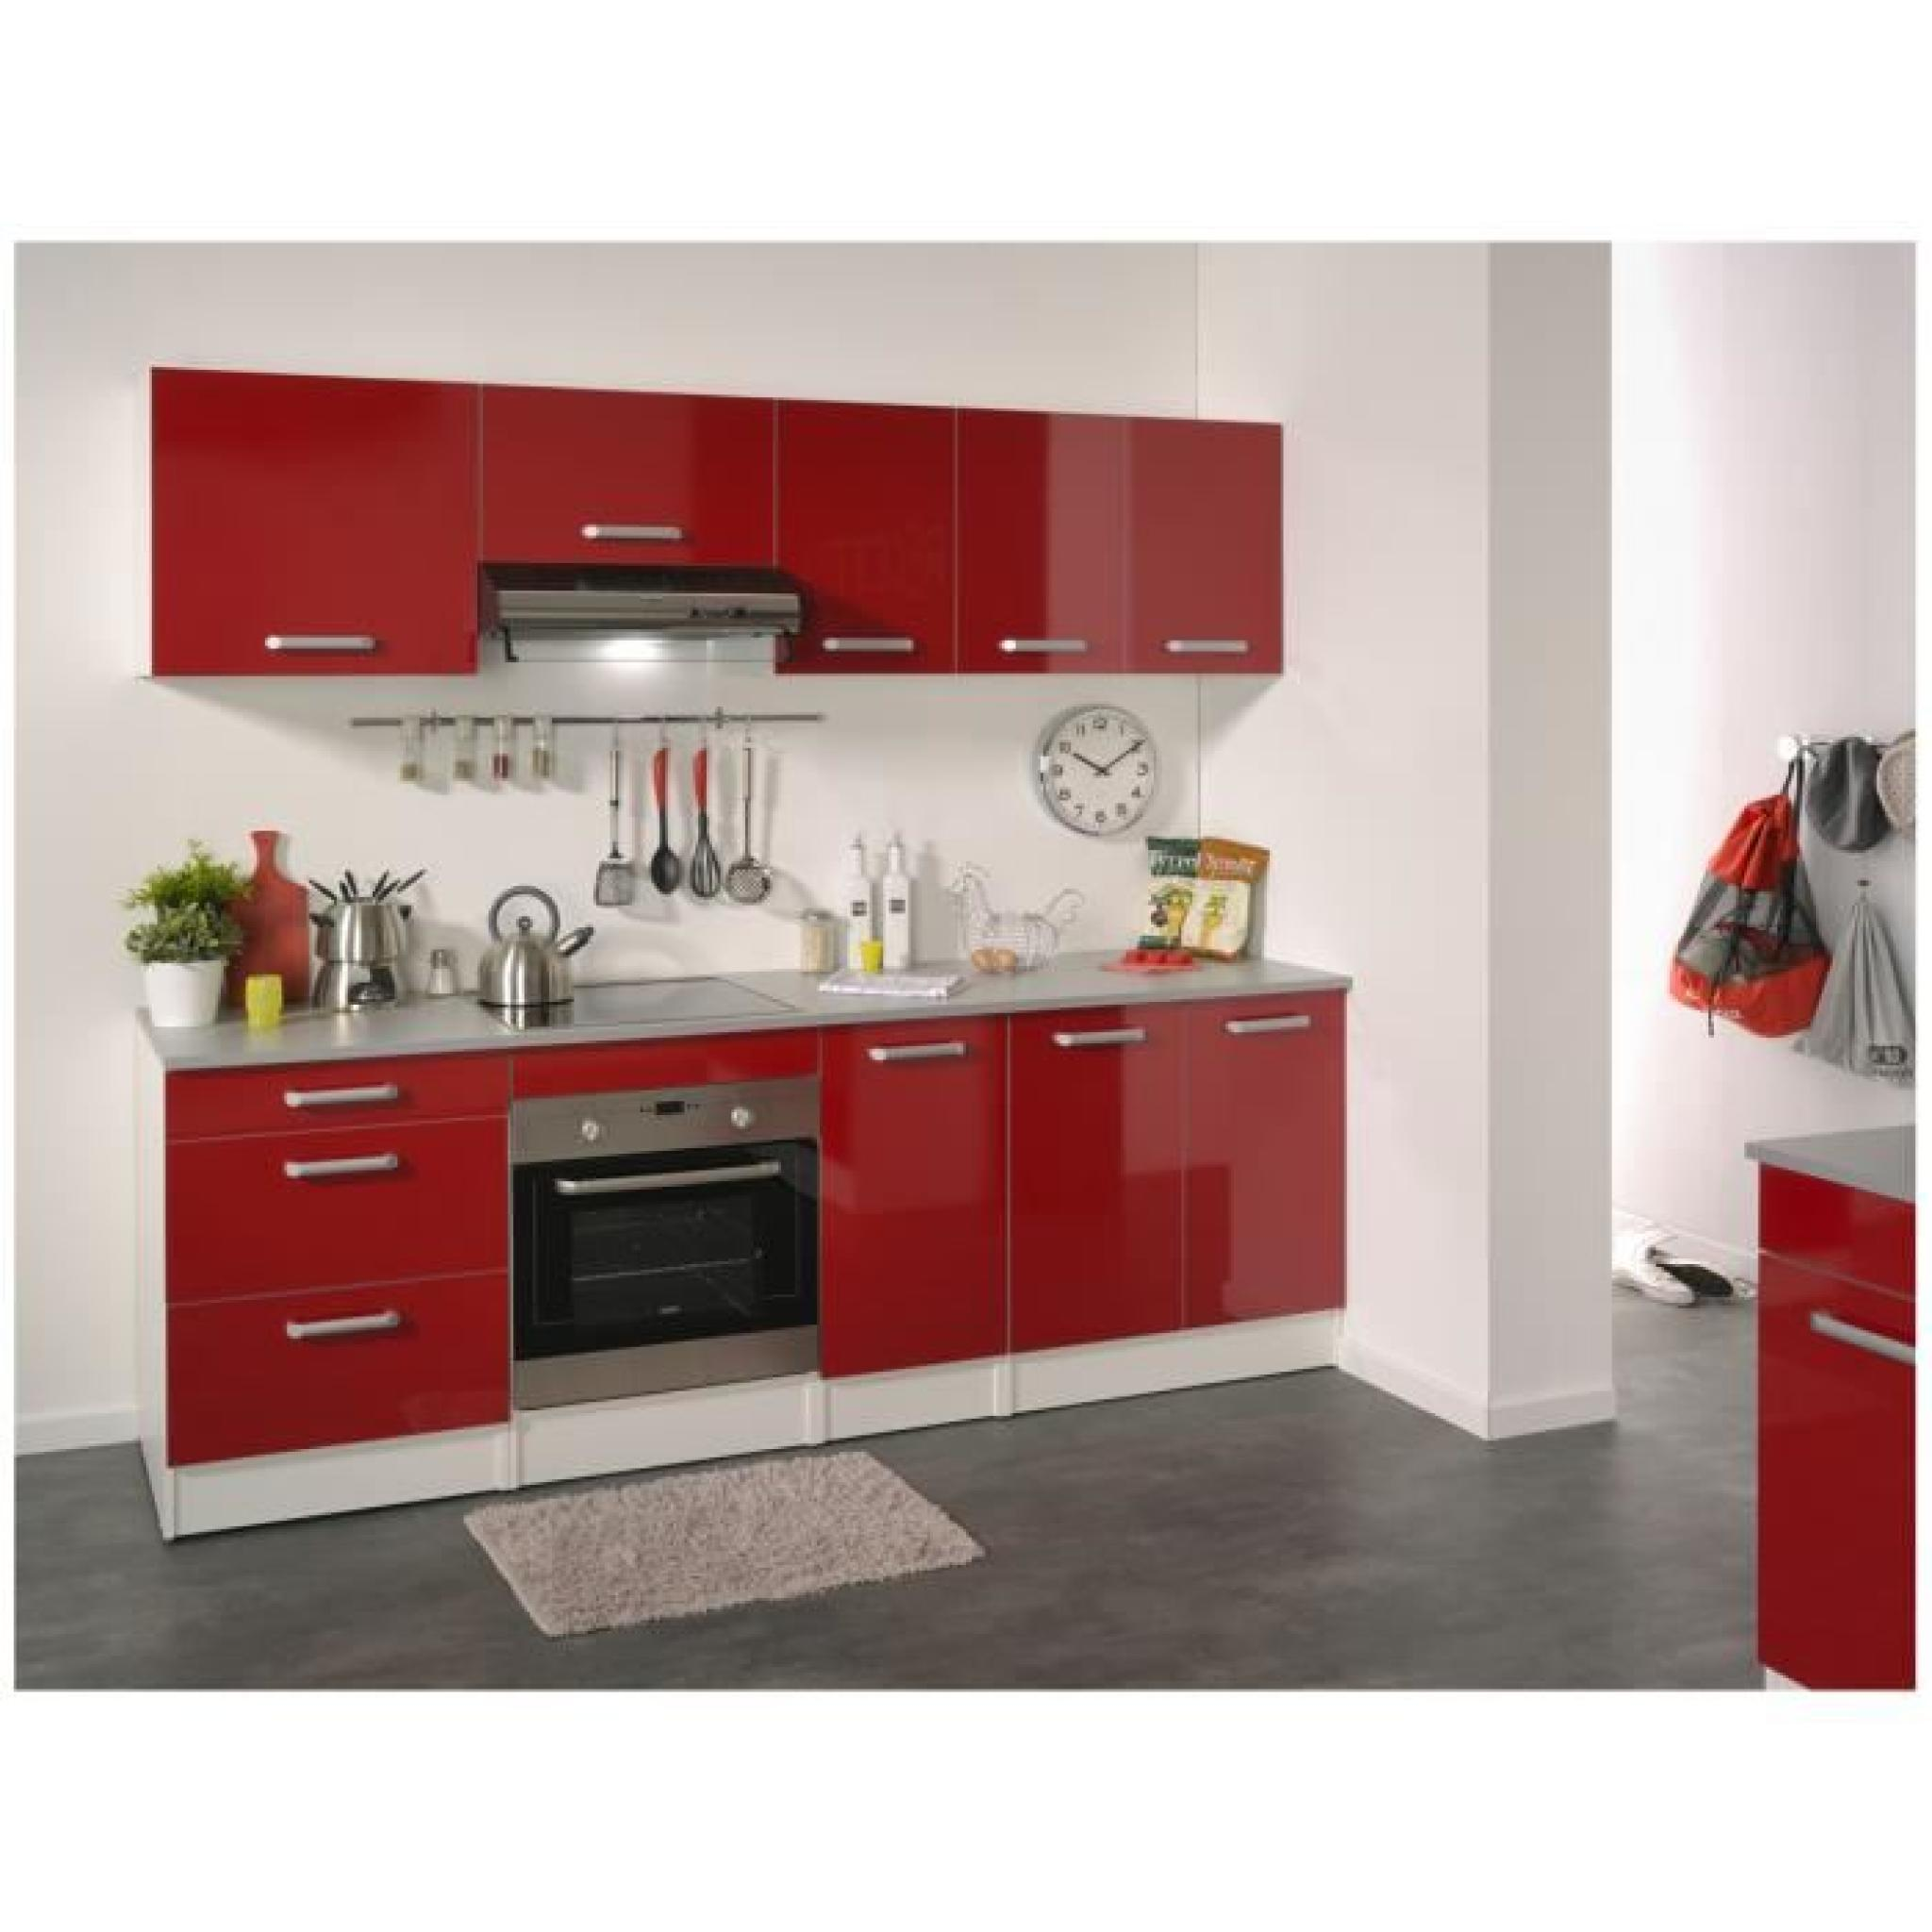 cuisine compl te 240 cm rouge brillant shiny achat vente cuisine complete pas cher couleur. Black Bedroom Furniture Sets. Home Design Ideas